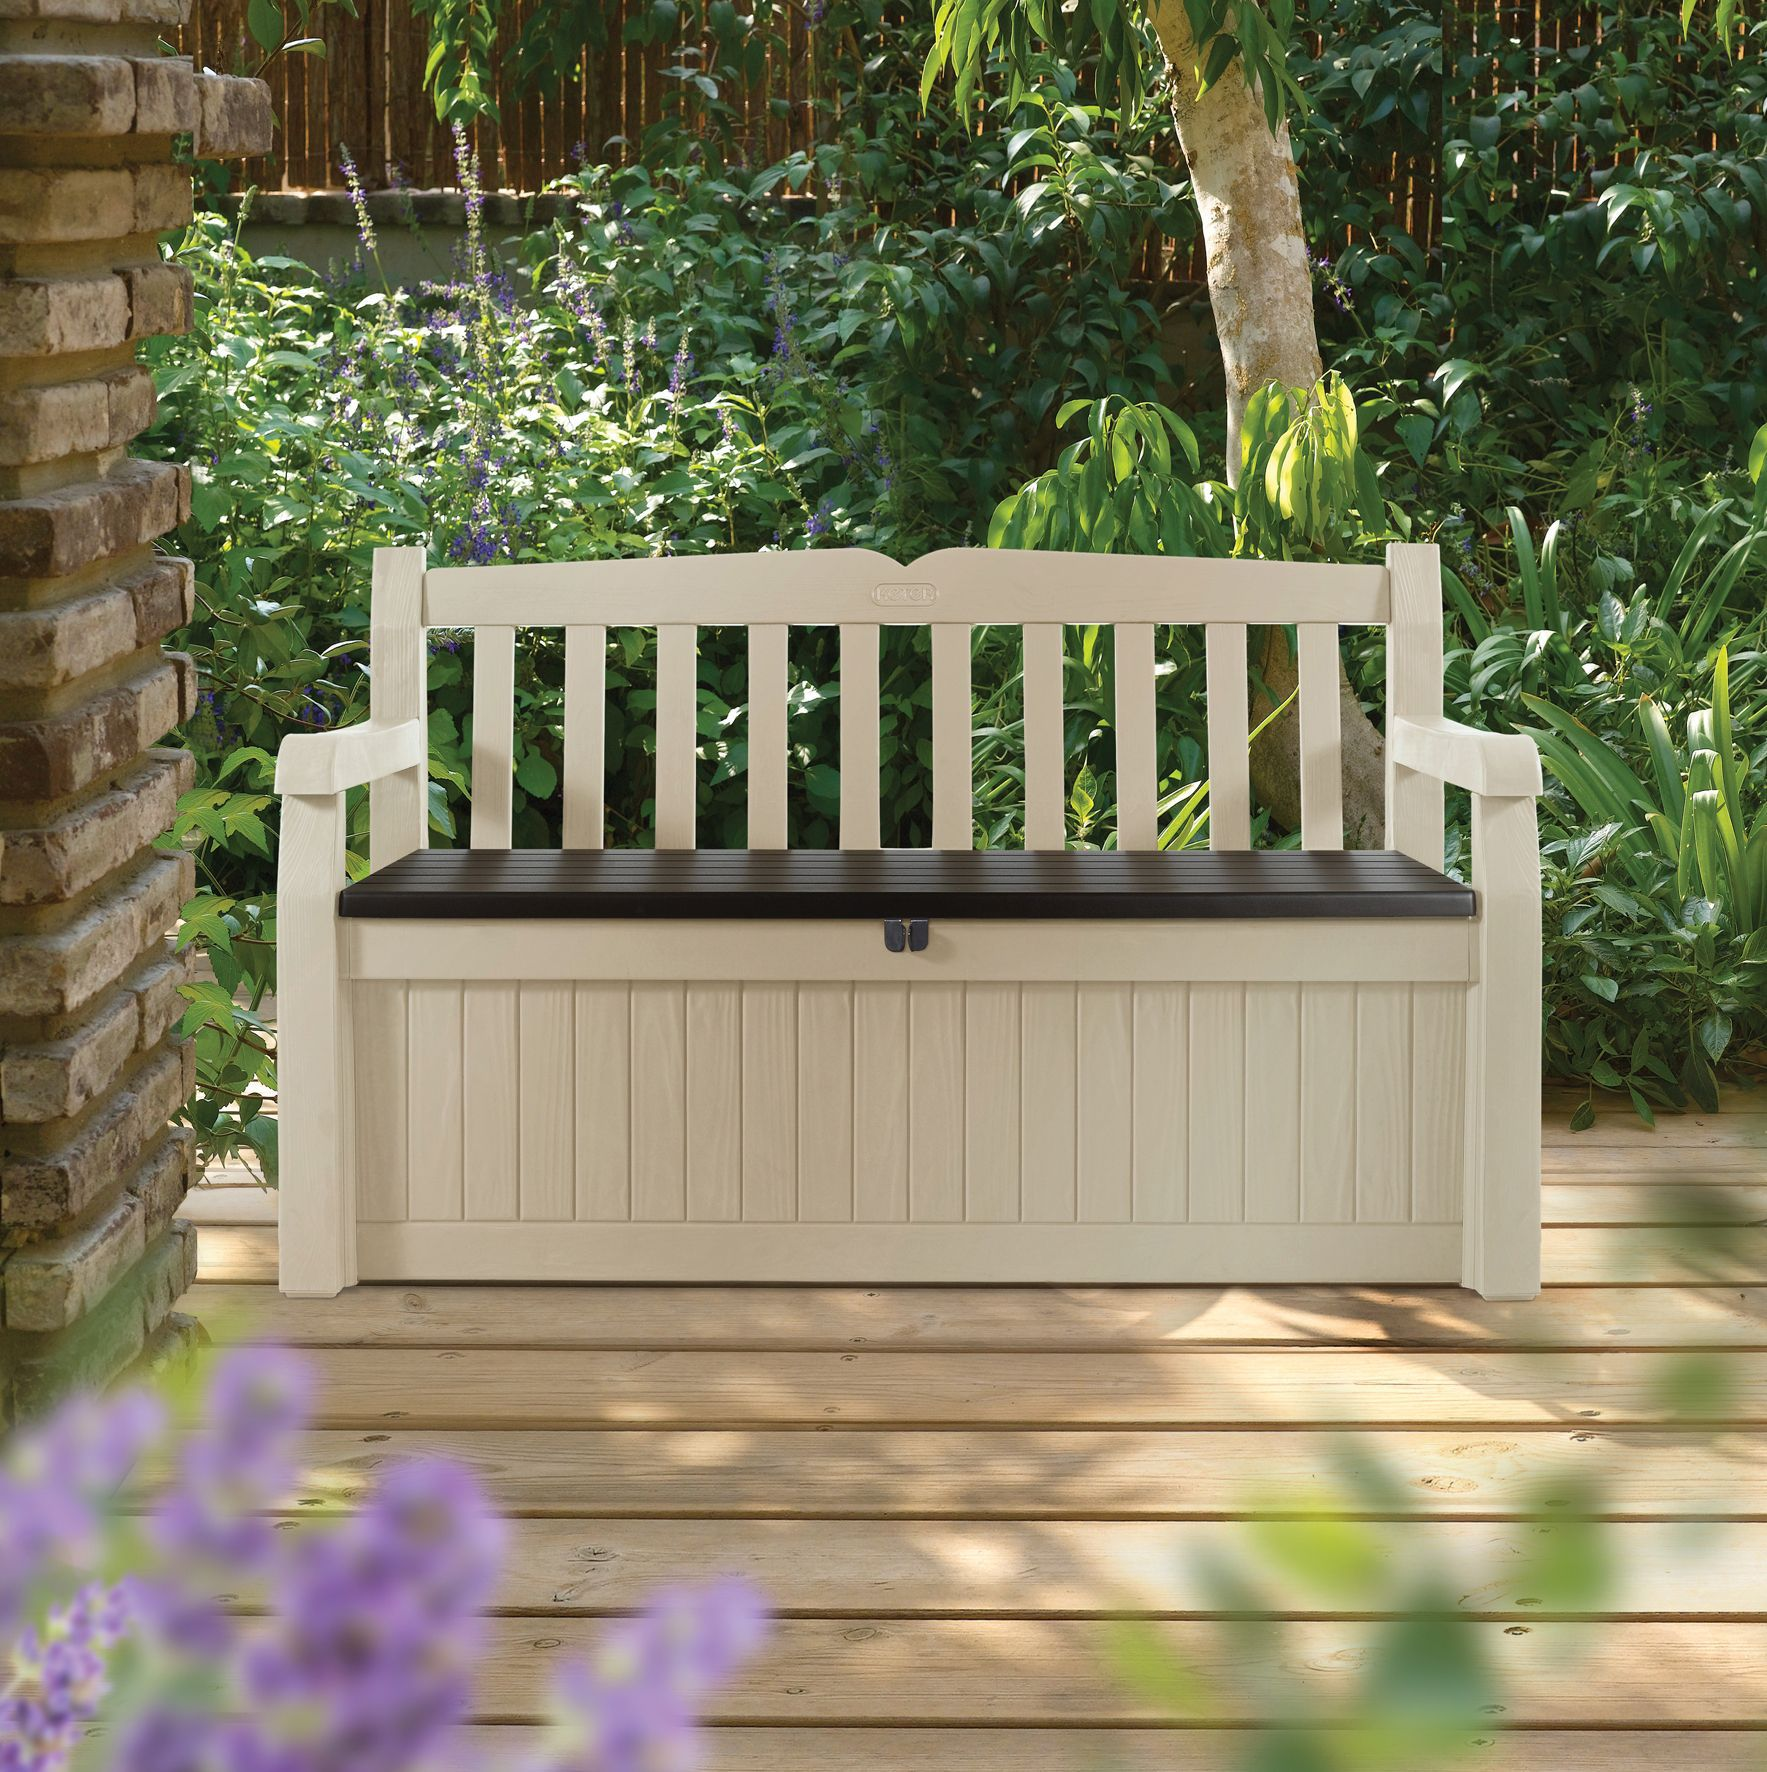 Eden plastic garden storage bench departments diy at b q for Bancos de jardin de plastico